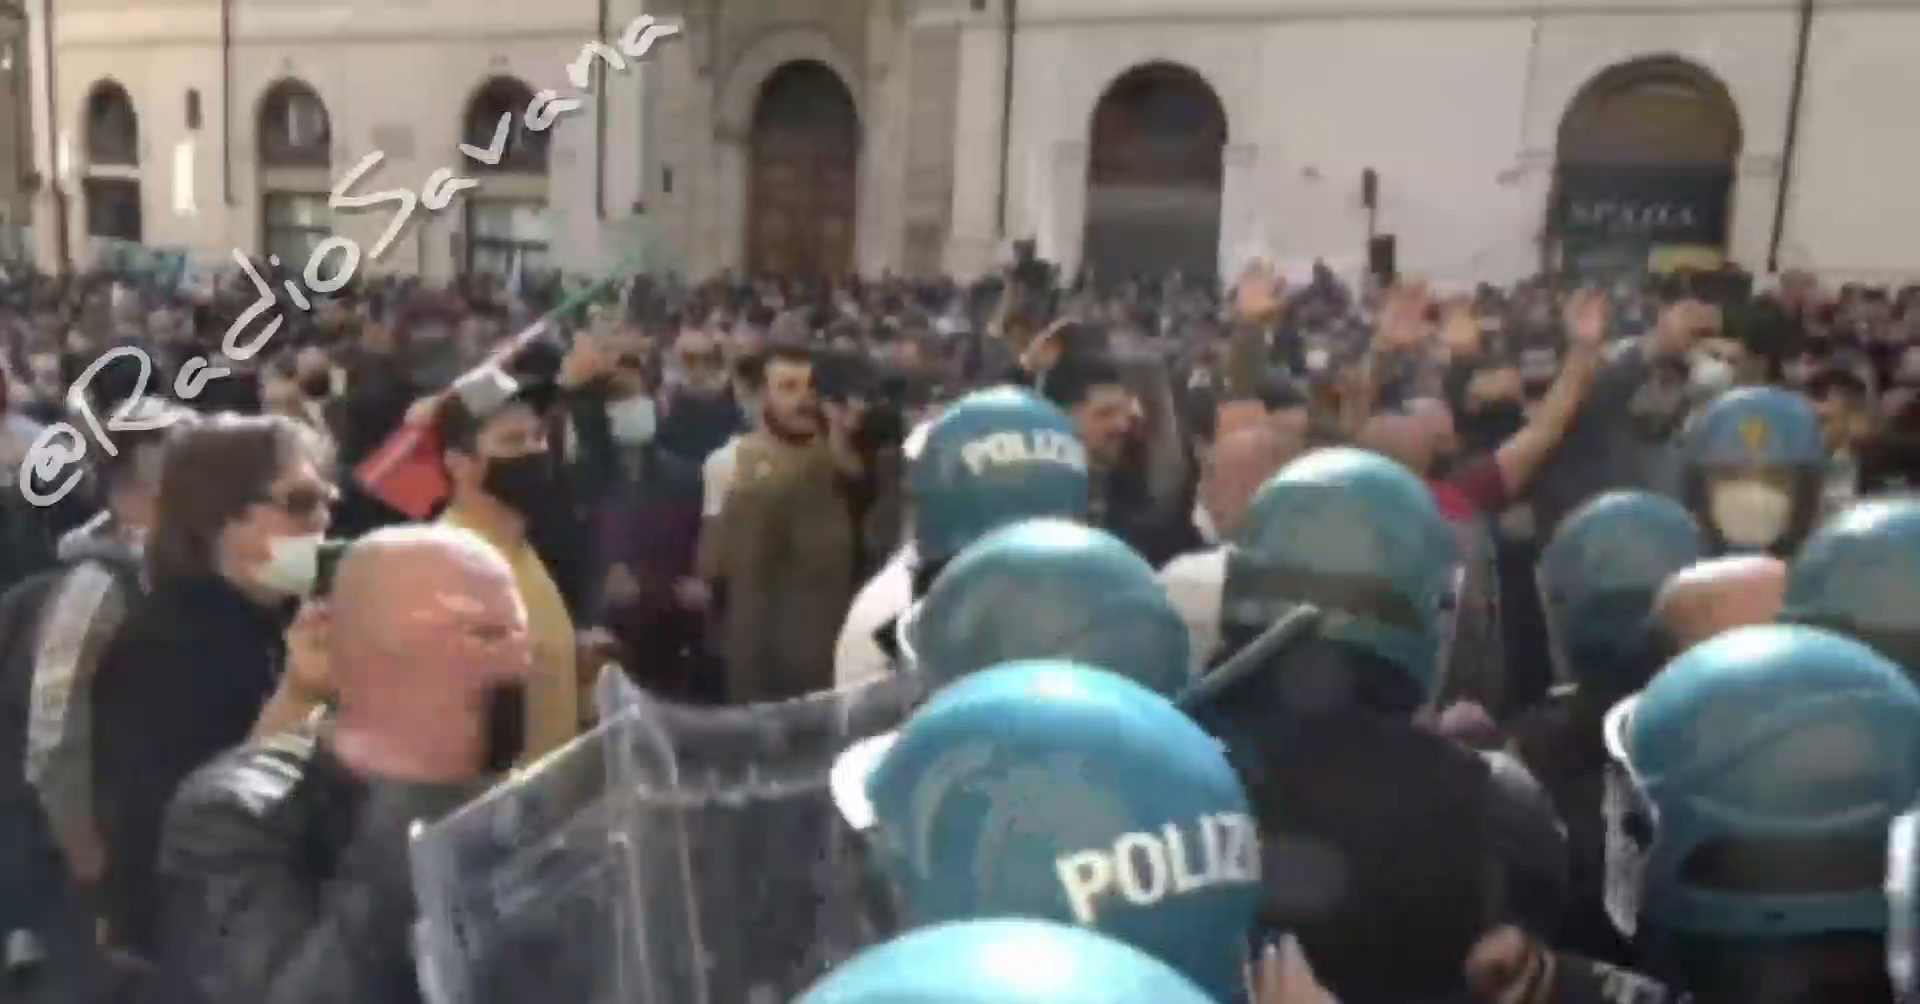 Italian people tried to storm the italian parliament earlier today